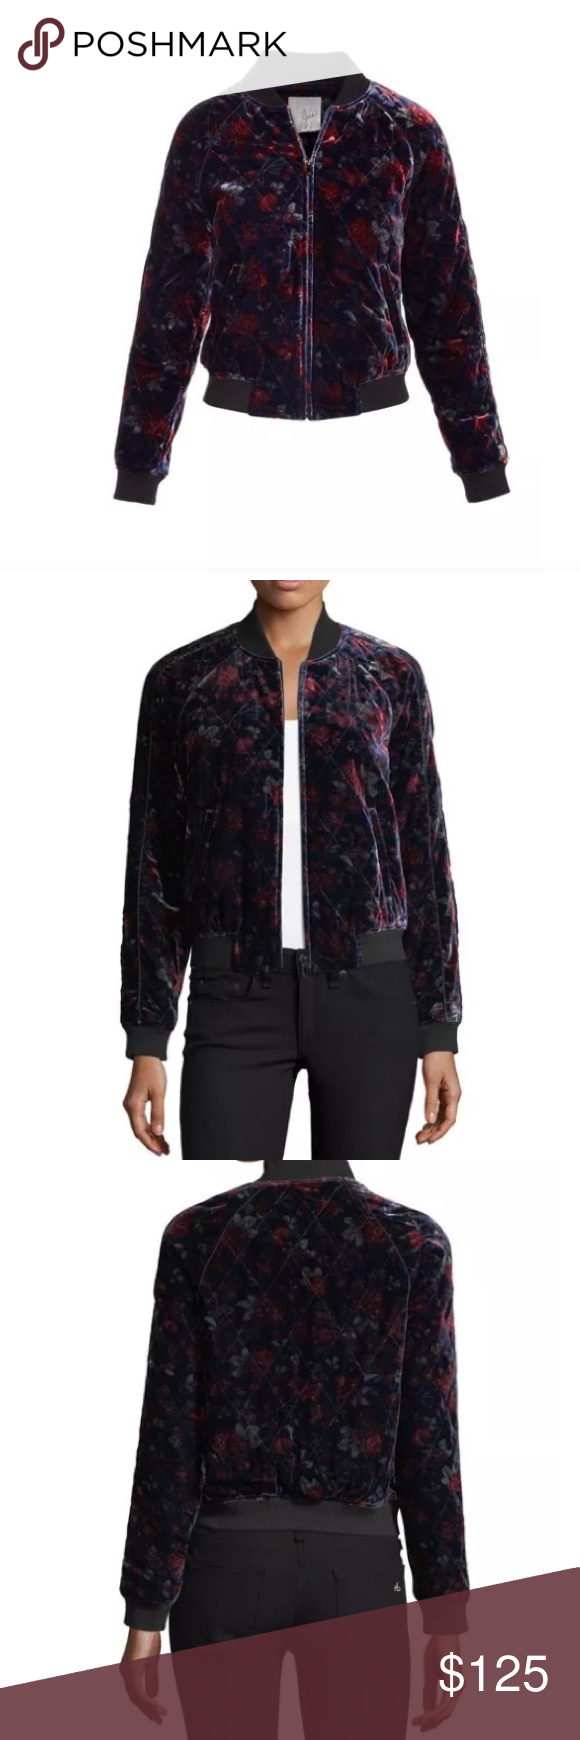 10dc35825fc Joie Mace Quilted Velvet Bomber Jacket Size XS Joie